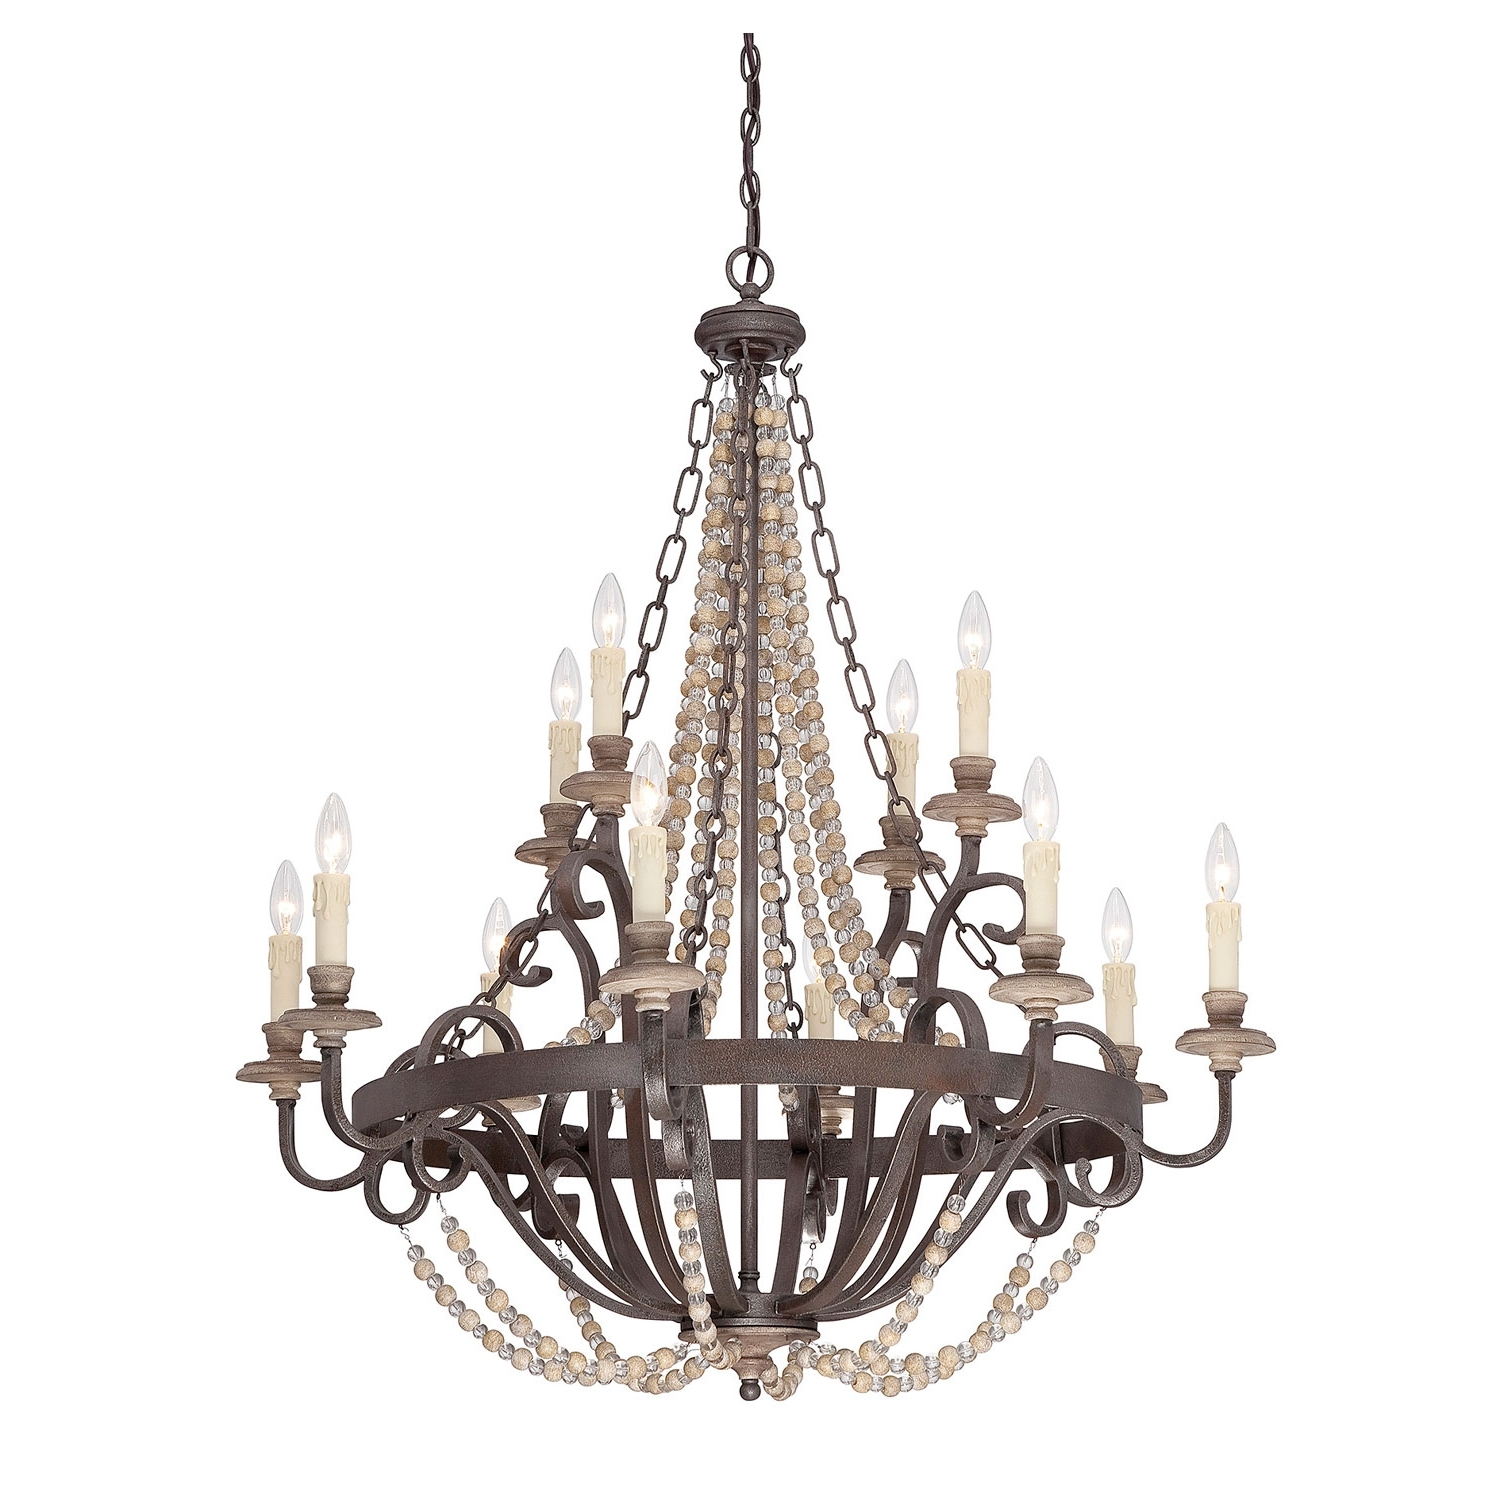 Savoy House Mallory Bronze 12 Light Chandelier On Sale Throughout Most Recent Candle Light Chandelier (View 17 of 20)